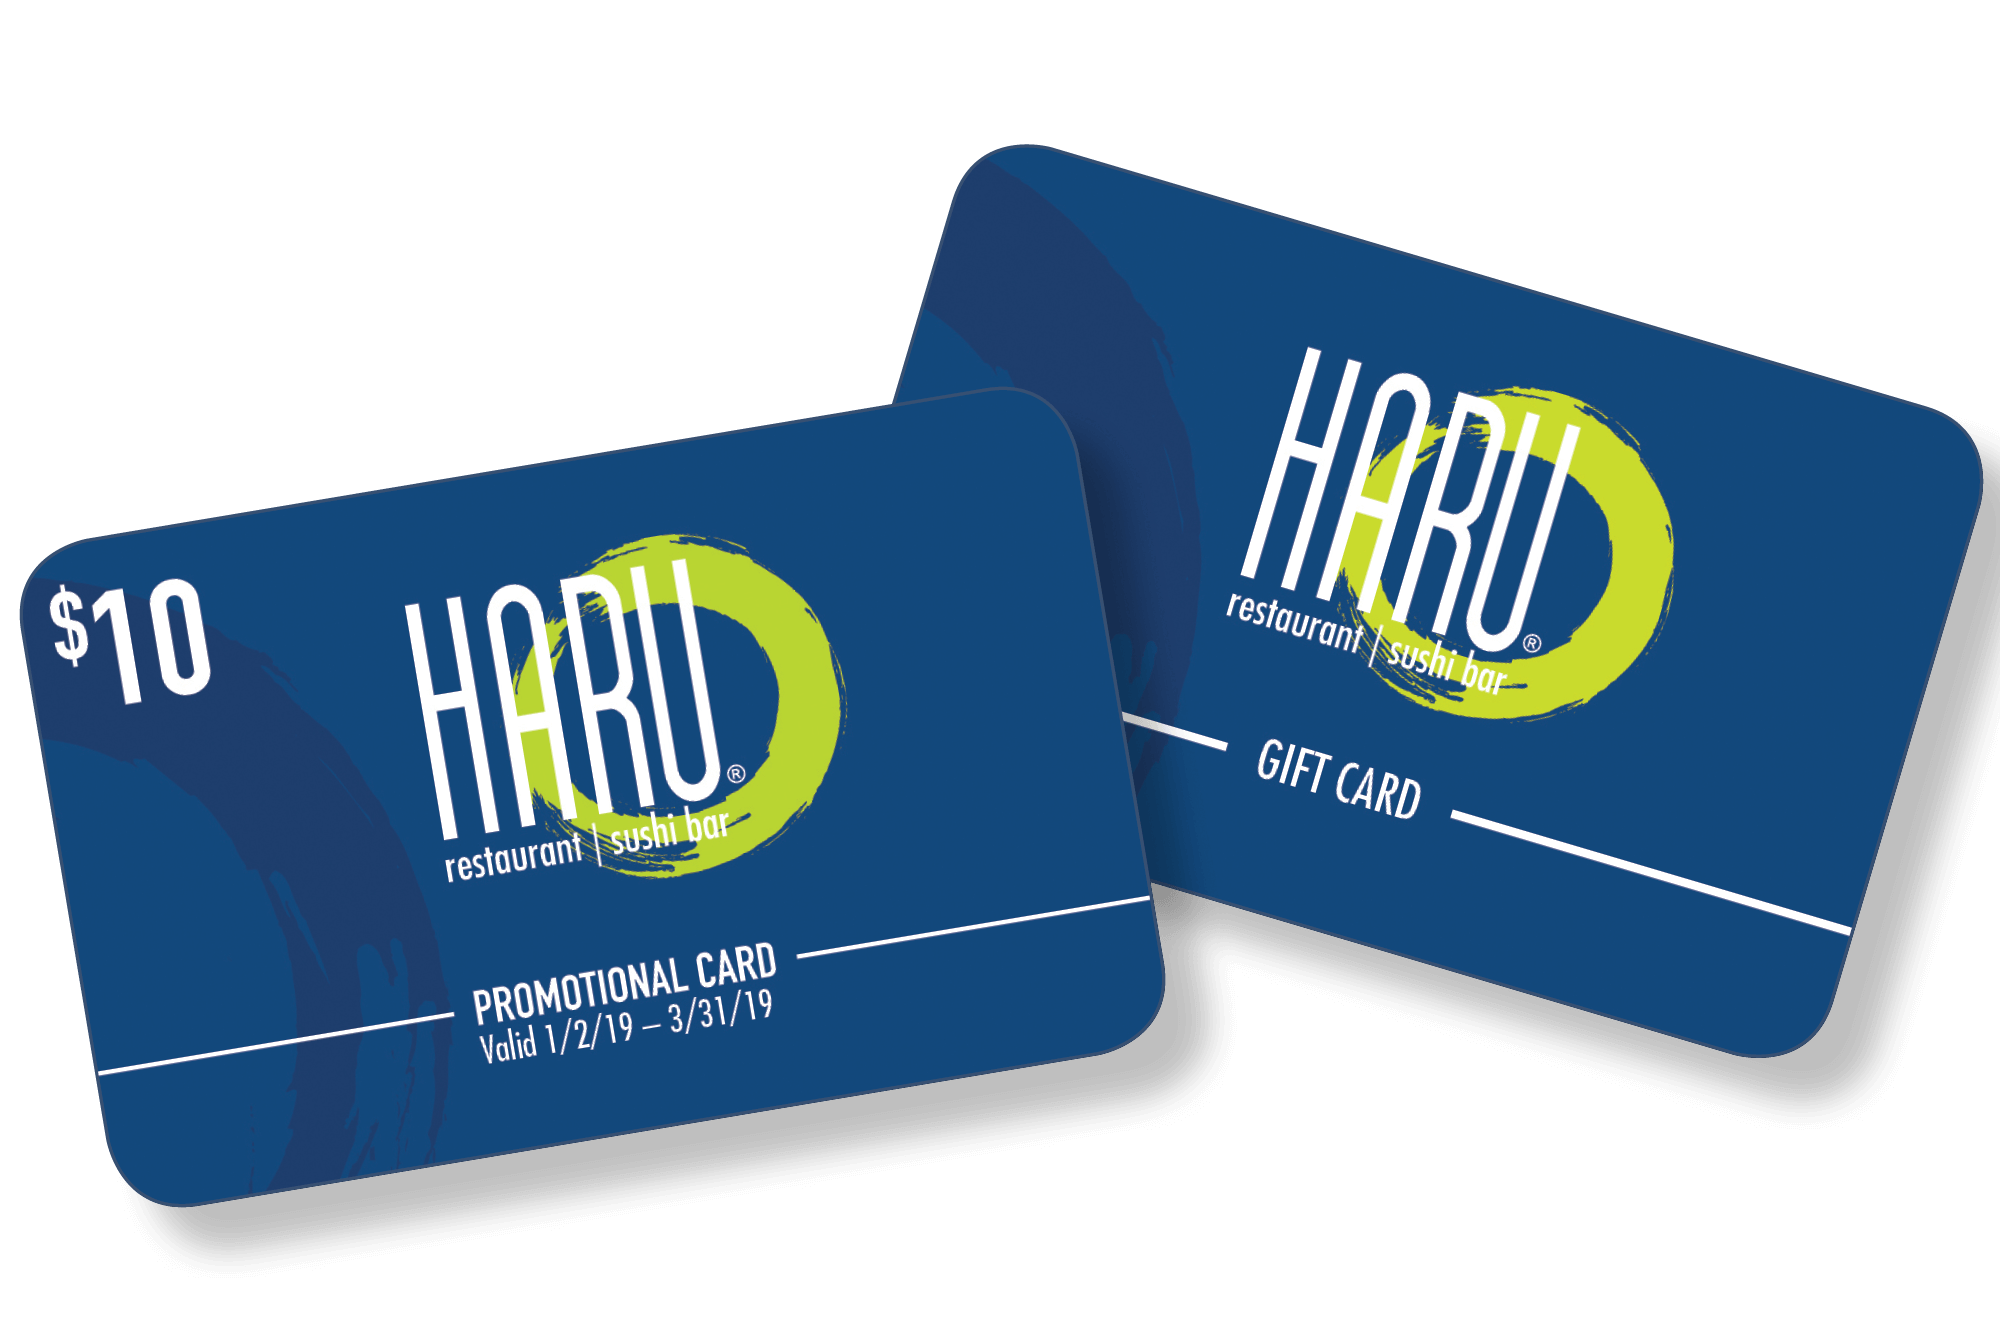 Holiday Haru Gift Cards